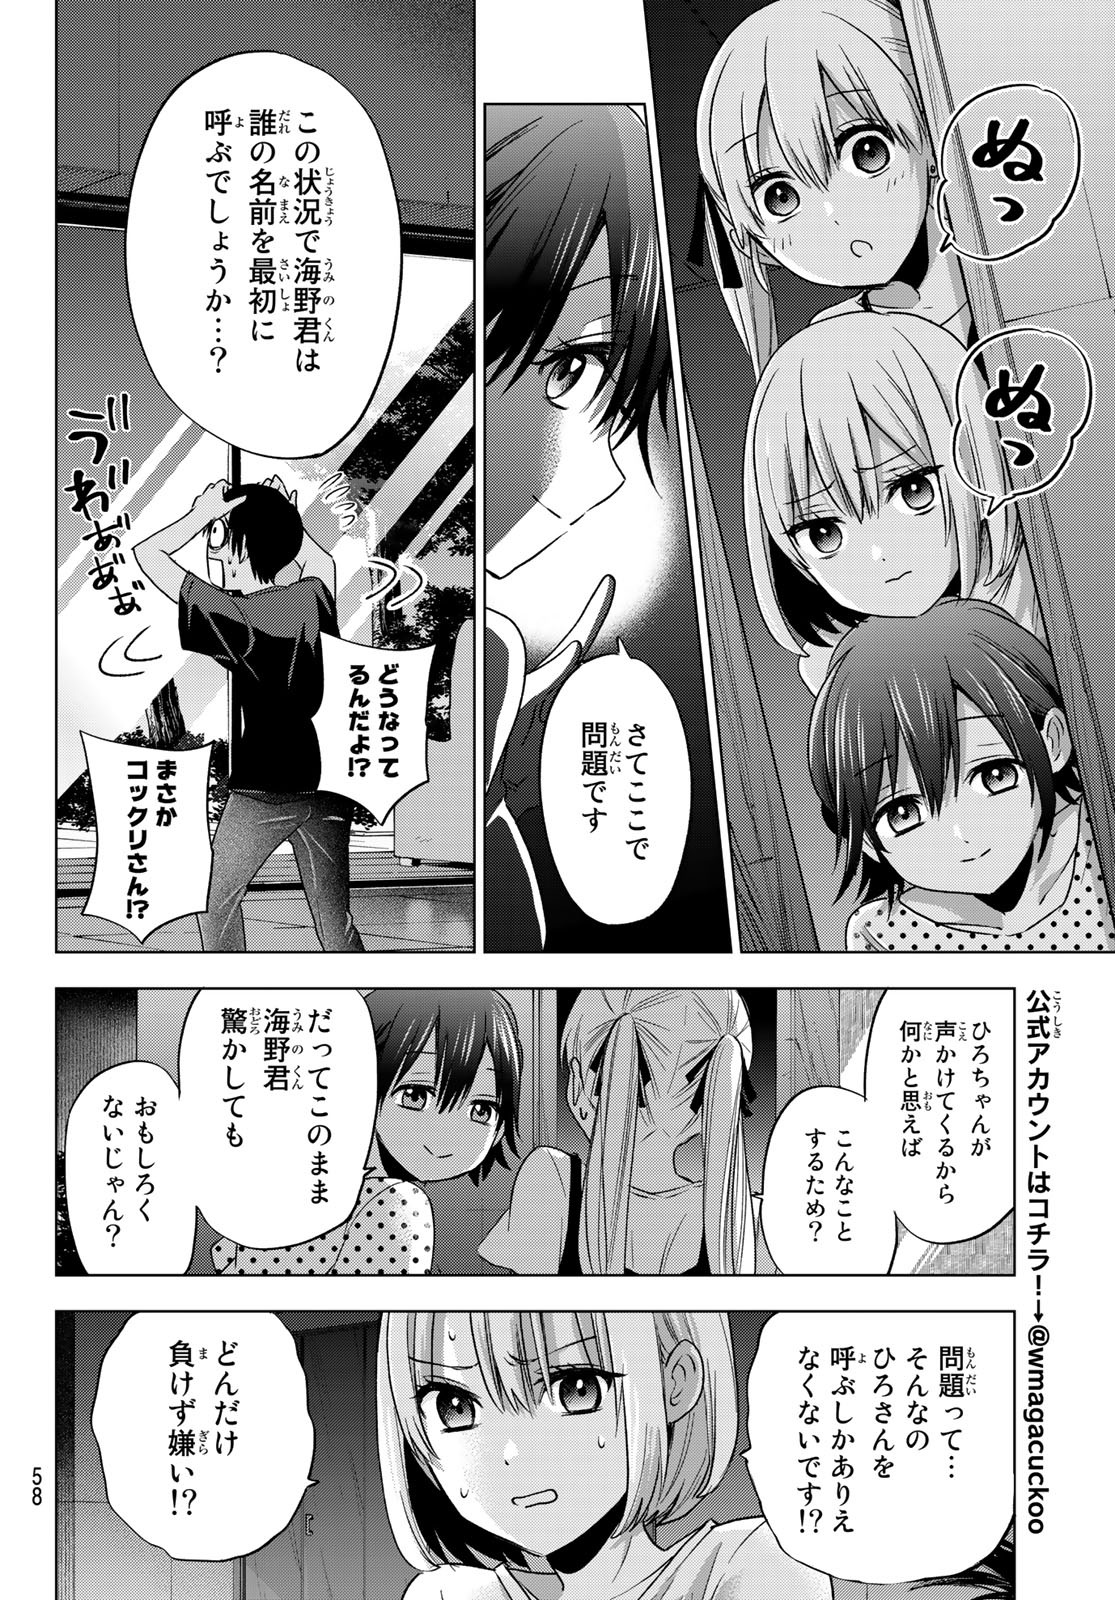 Manga Raw Kakkou no Iinazuke Chapter 58